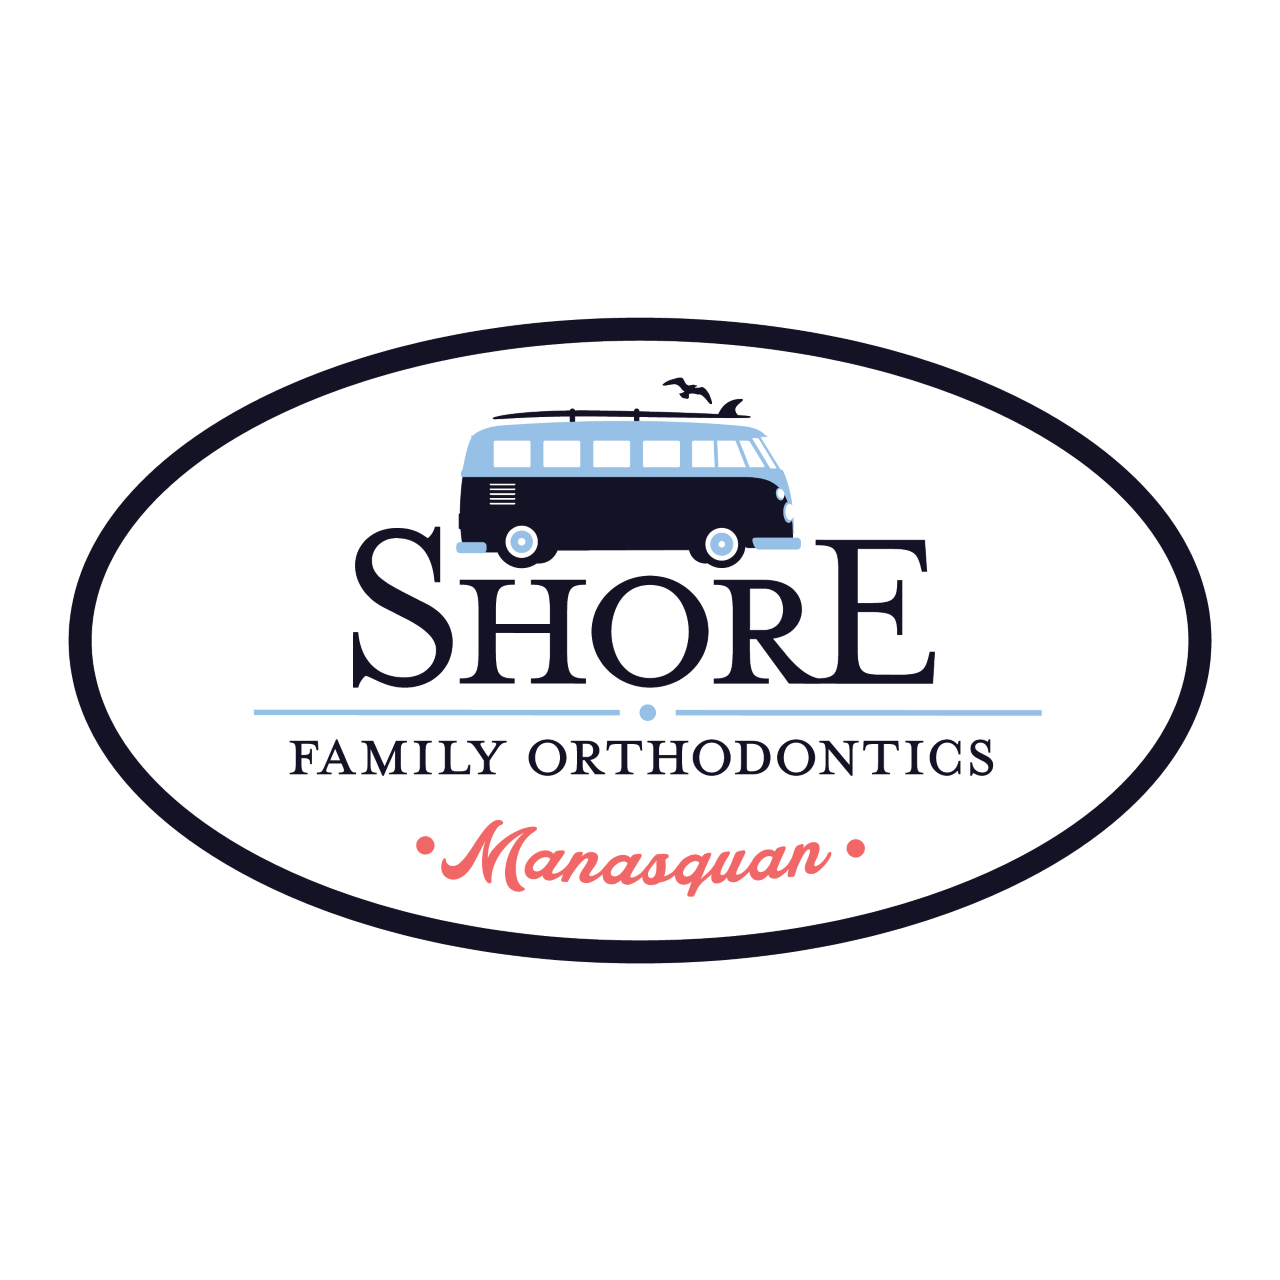 Shore Family Orthodontics